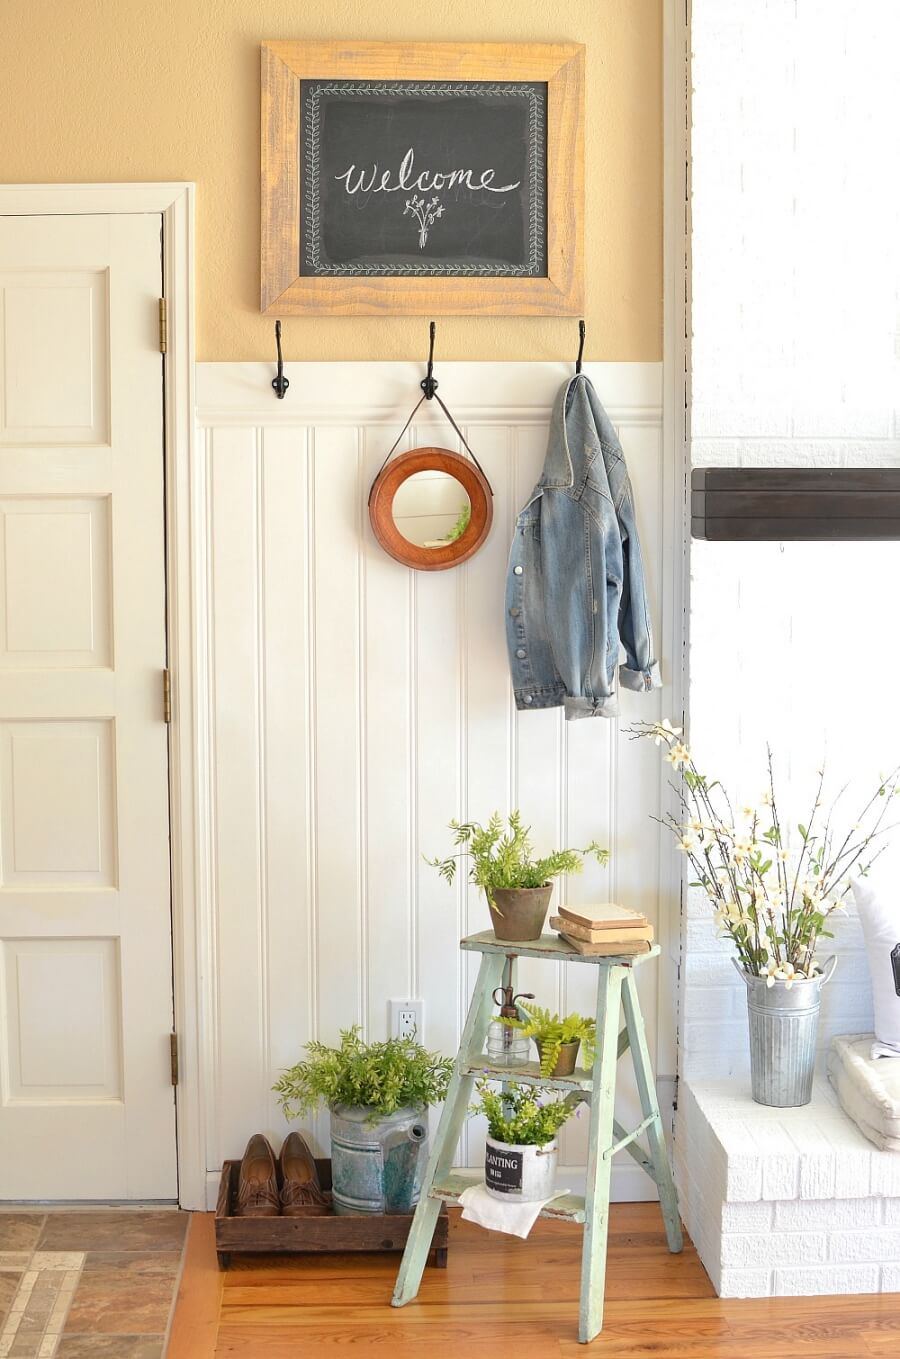 Put Seasonal Touches to the Entryway